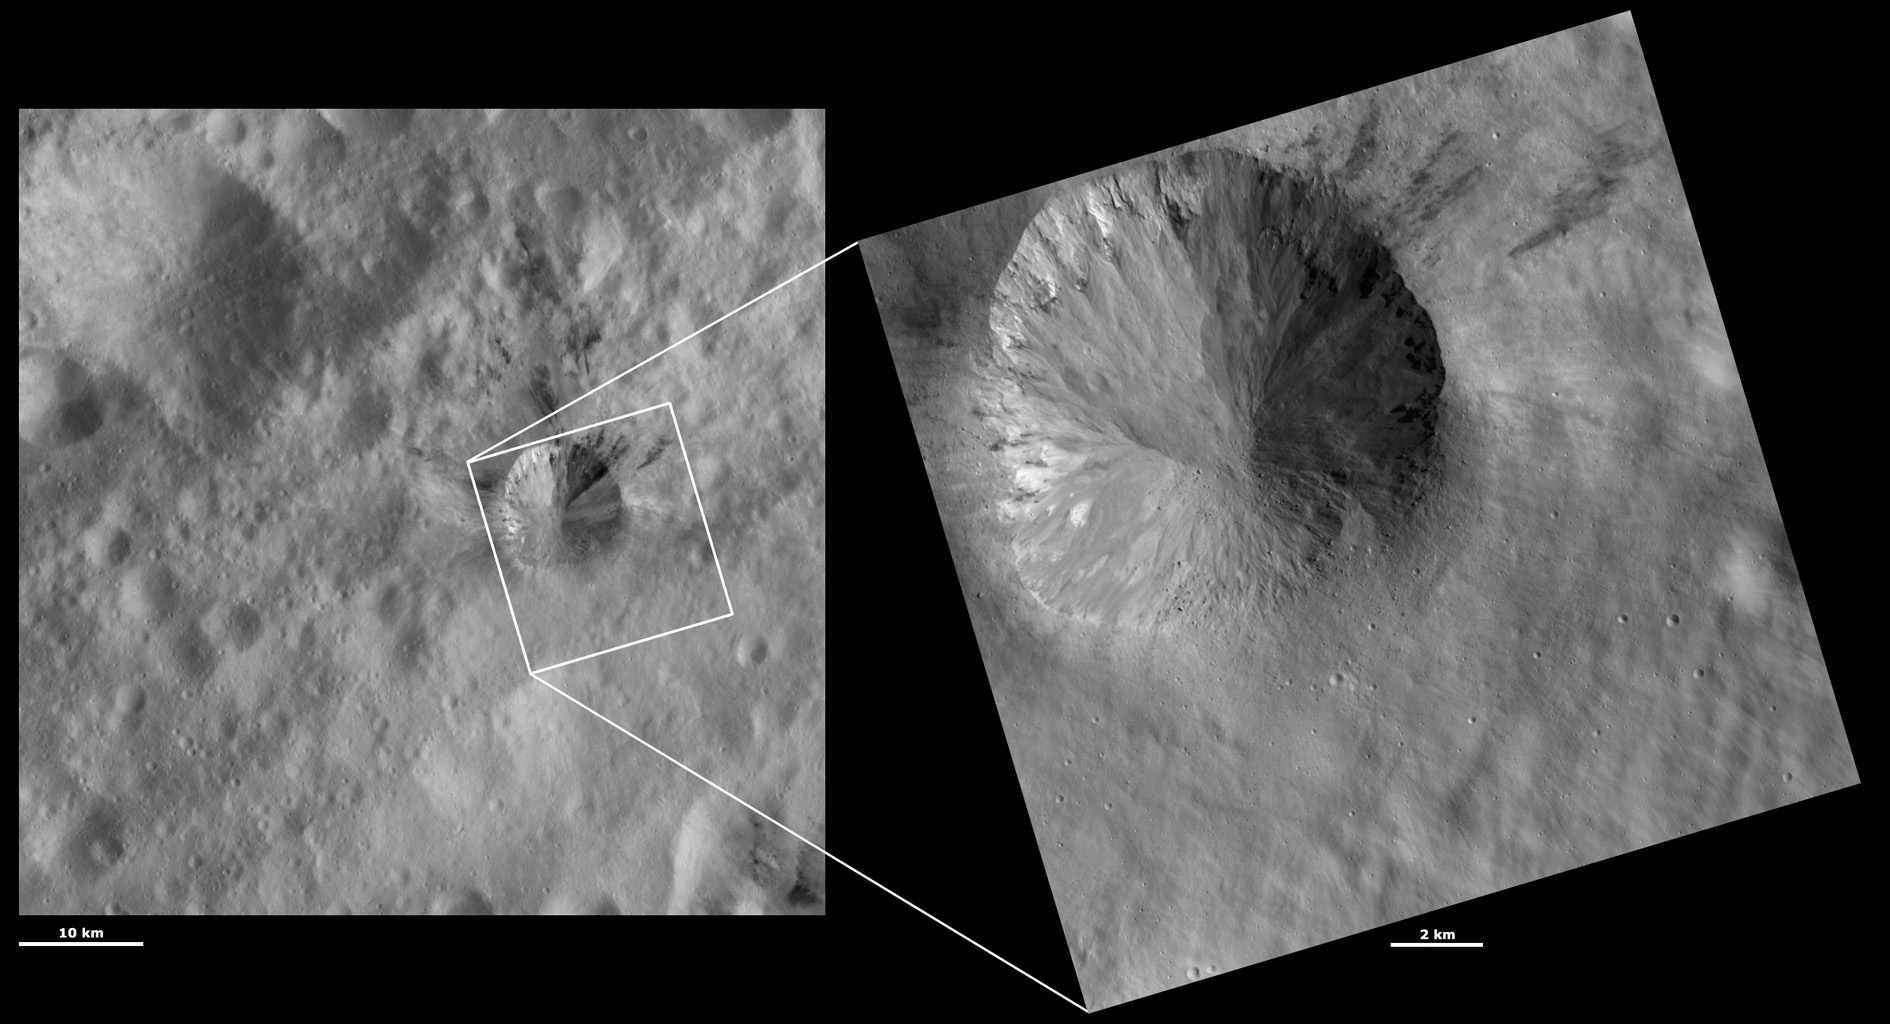 These images from NASA's Dawn spacecraft are located in asteroid Vesta's Gegania quadrangle, a little south of Vesta's equator; boulders can be seen on the bottom side of the crater.